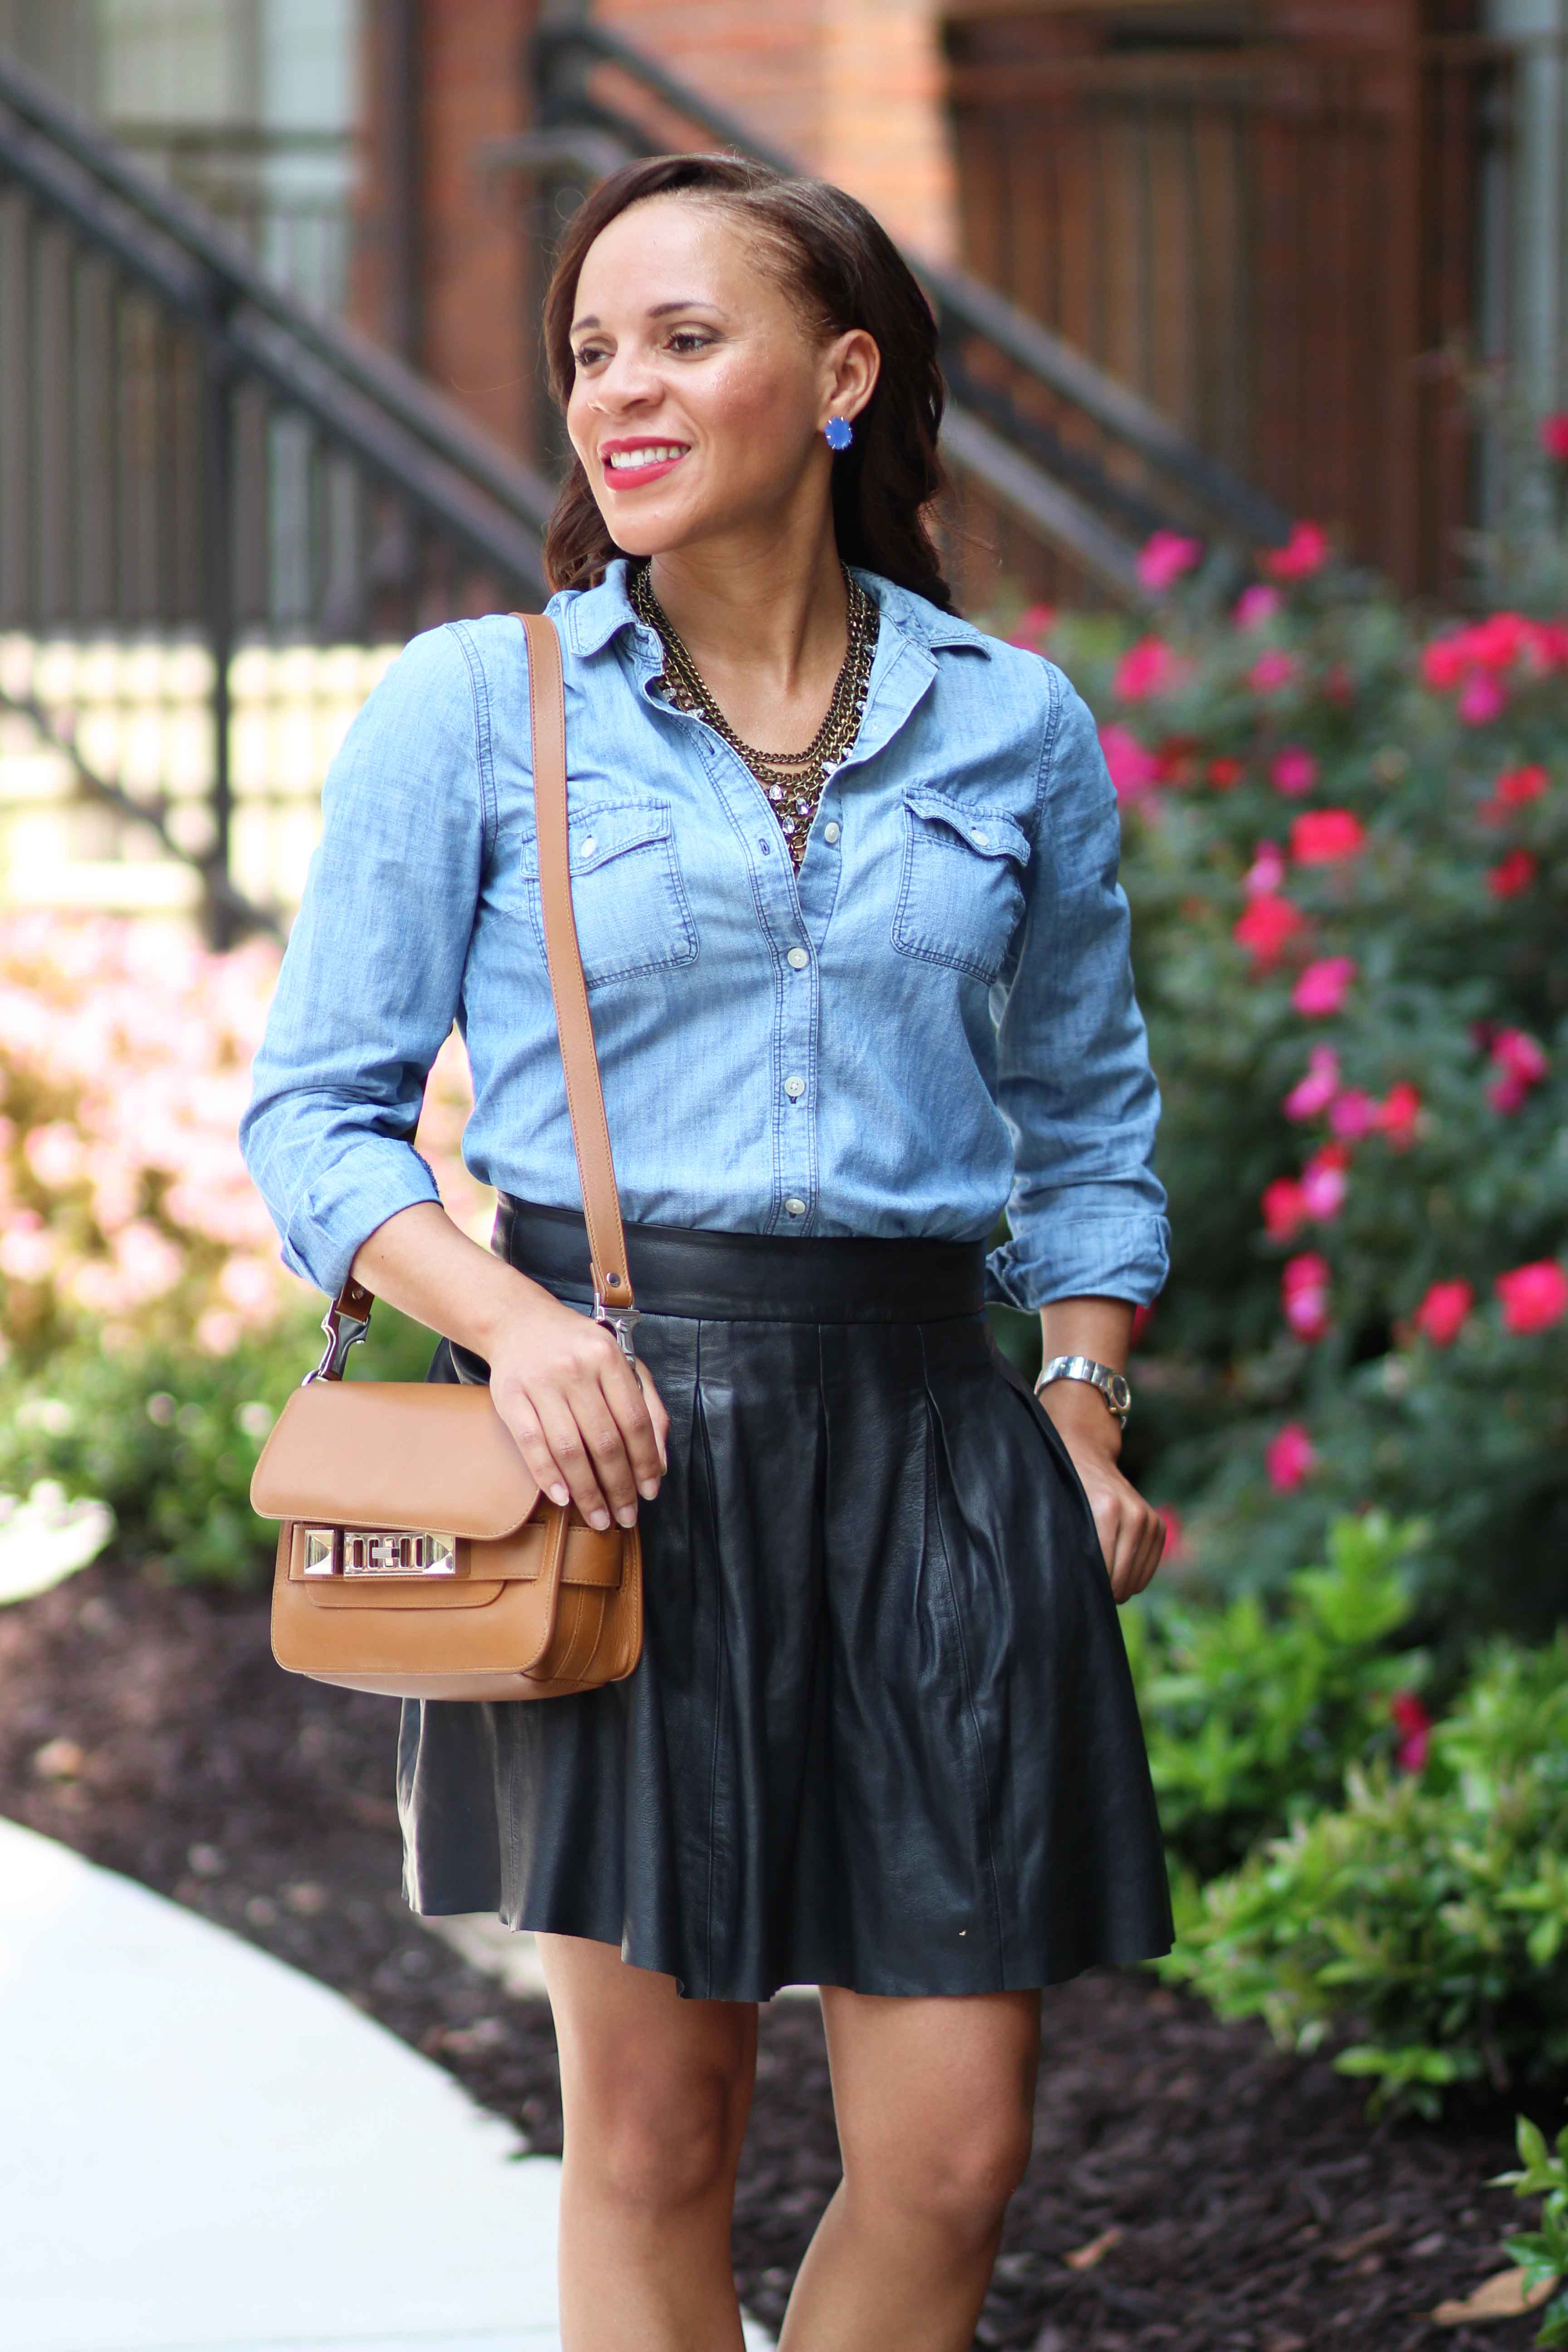 denim shirt and leather skater skirt to the nines